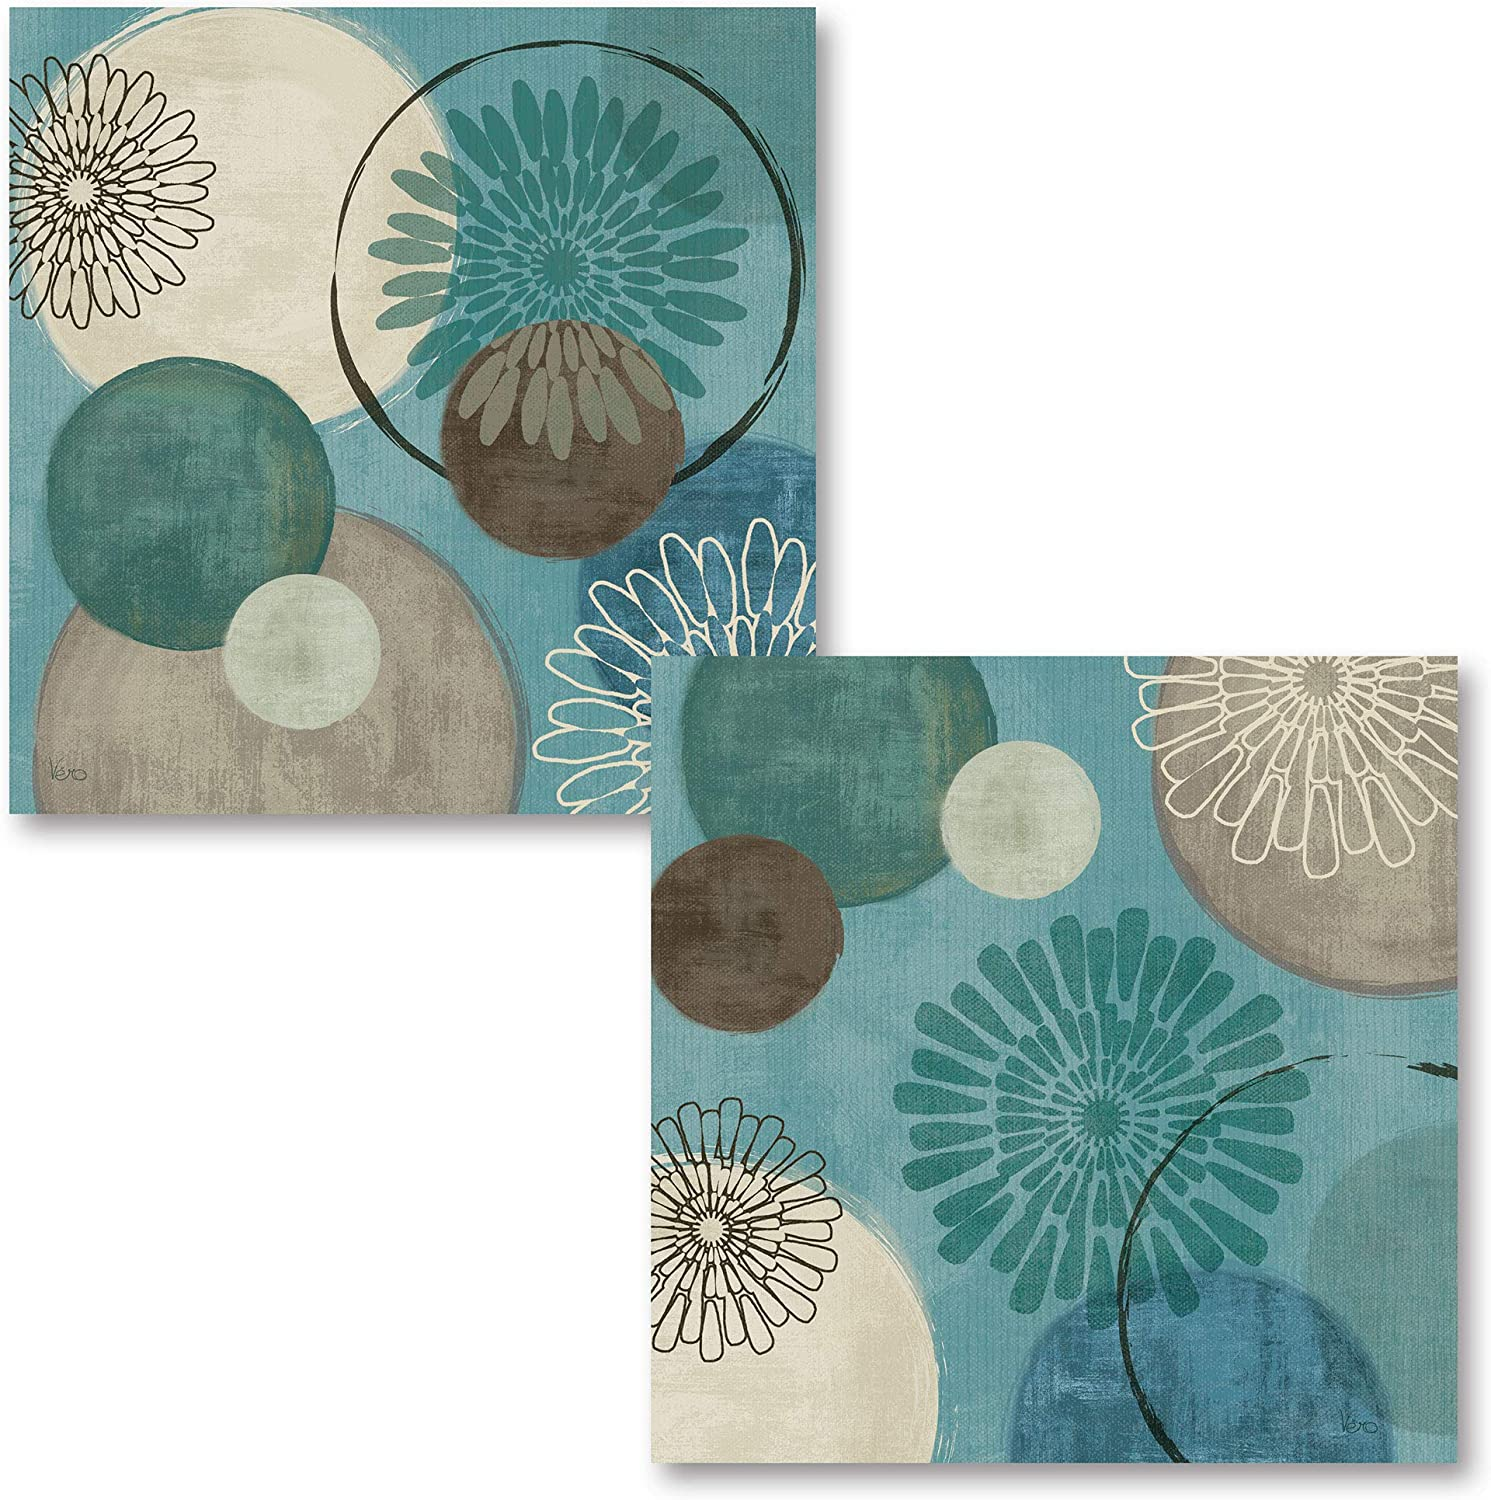 Gango Home Décor Lovely Teal and Brown Abstract Circle Patterned Set by Daphne Brissonnet; Two 12x12in Poster Prints